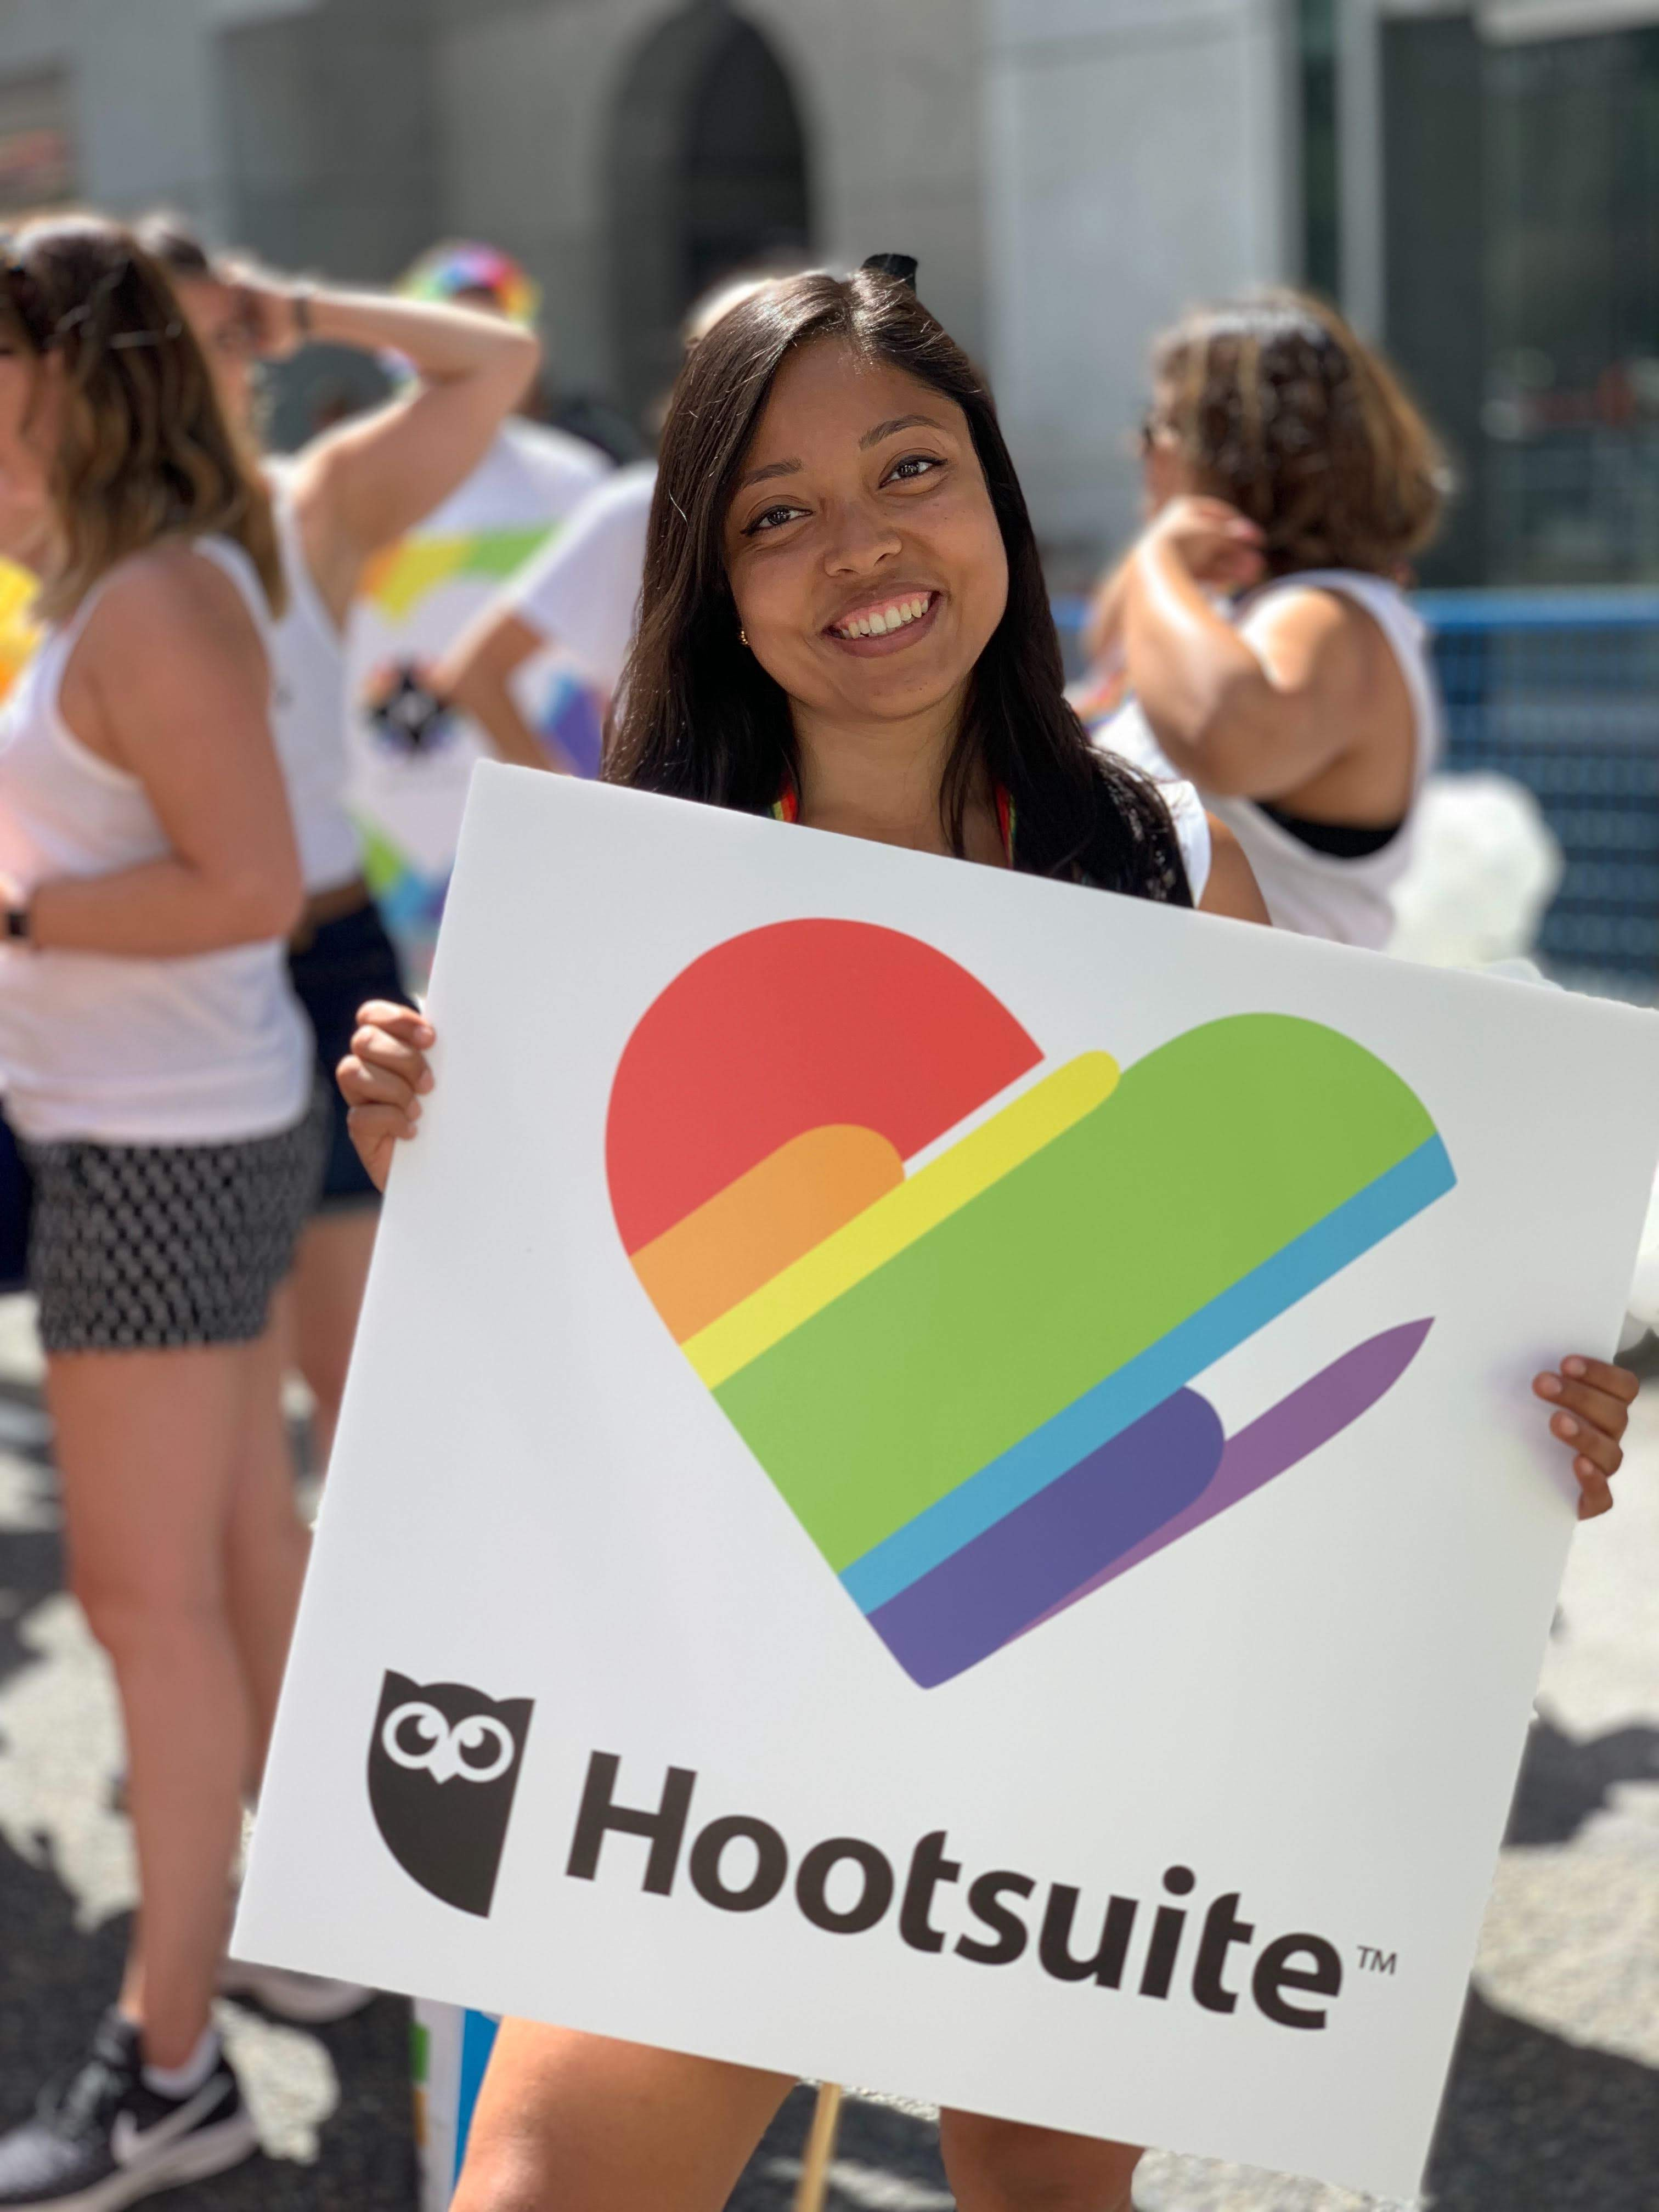 Repping Hootsuite at the Pride Parade